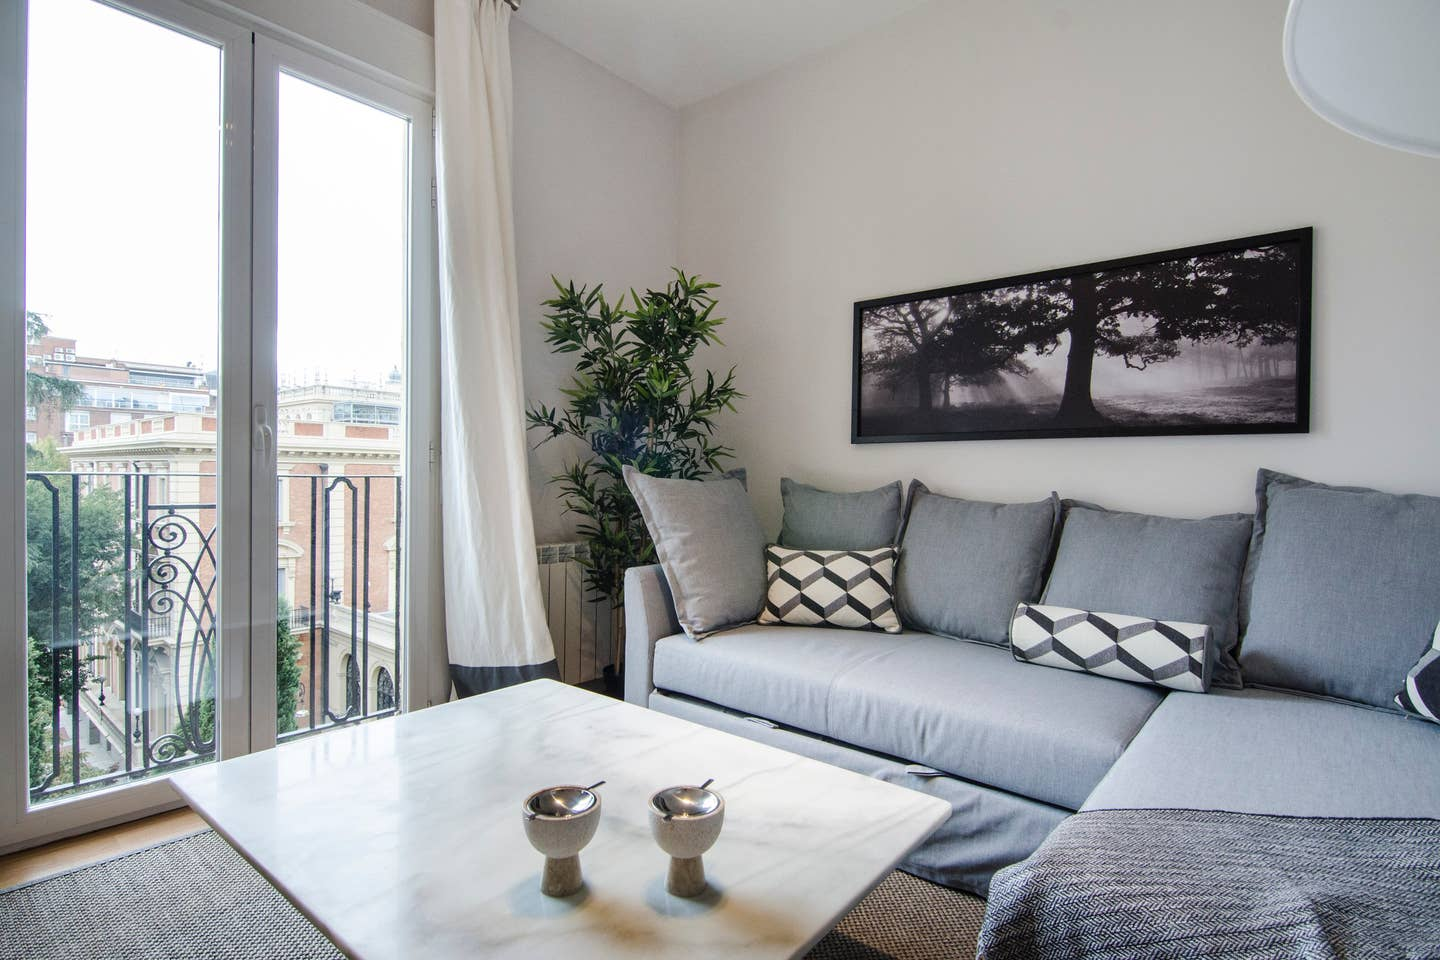 Property Image 2 - Cozy and Bright Apartment in Salamanca Area